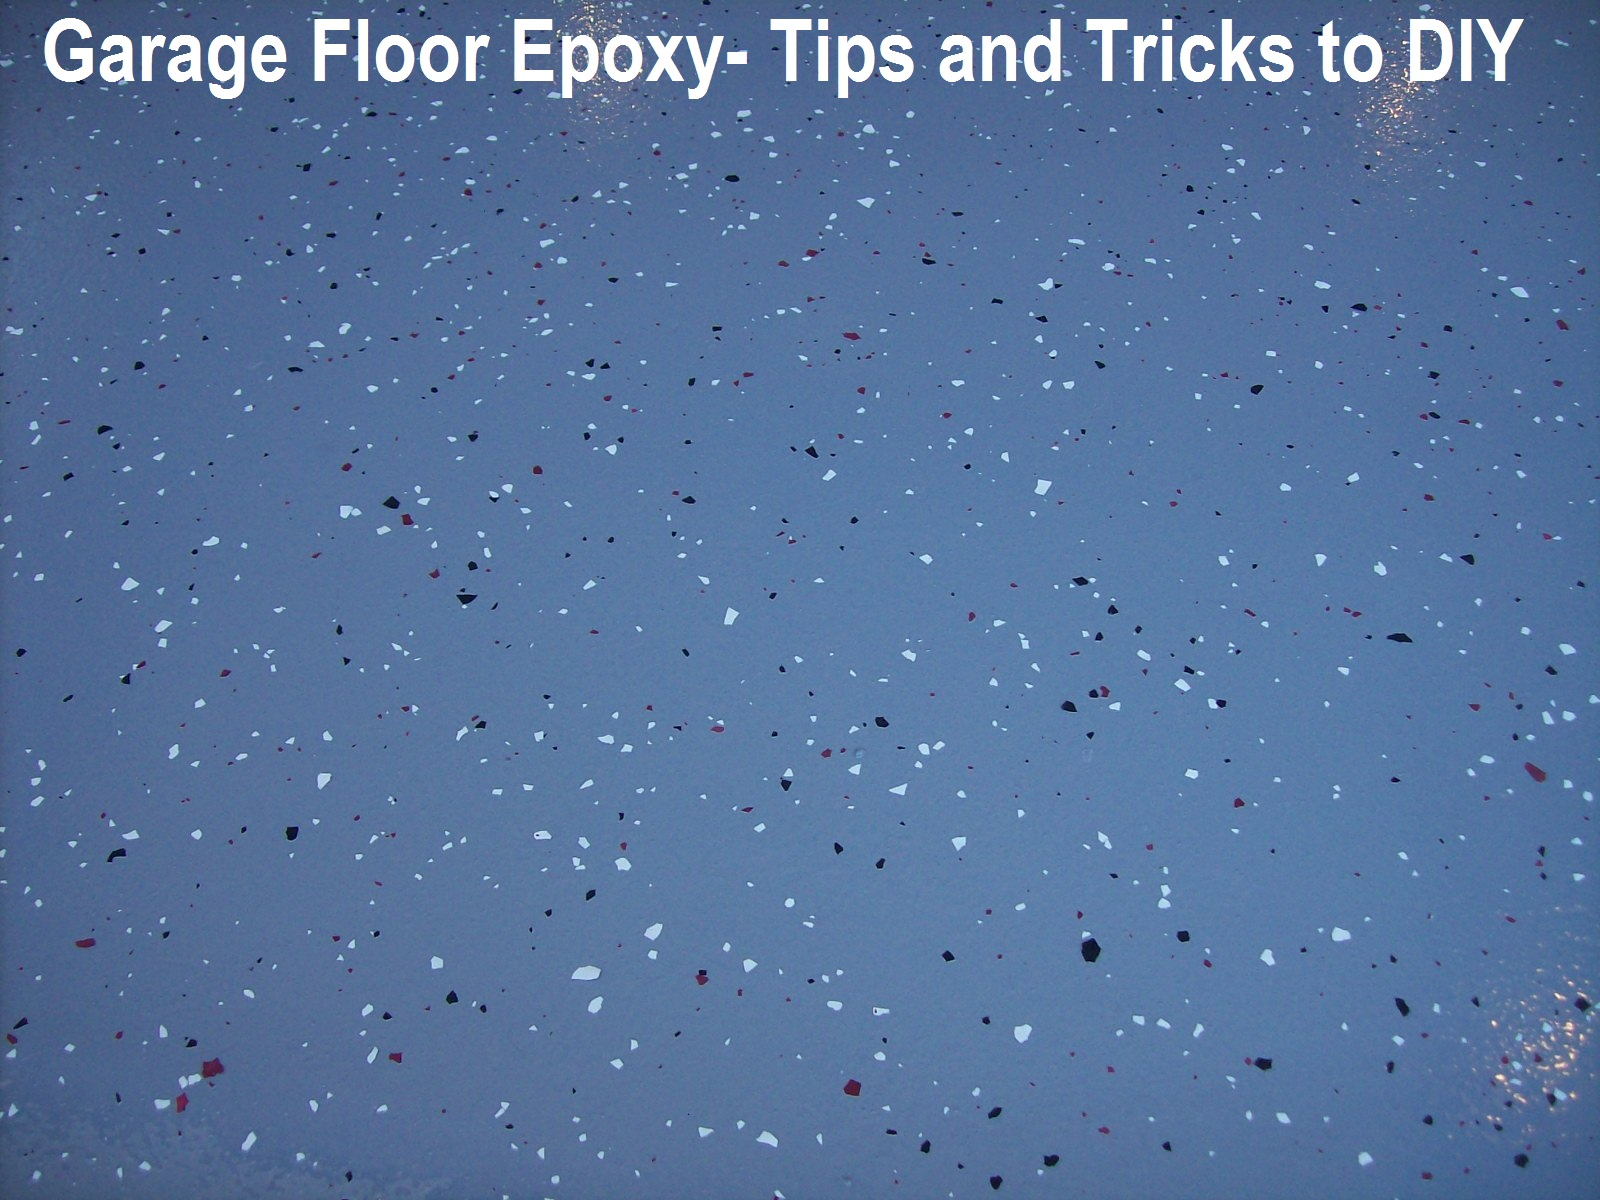 Garage floor epoxy tips and tricks sunlit spaces - Things to consider before installing epoxy flooring ...